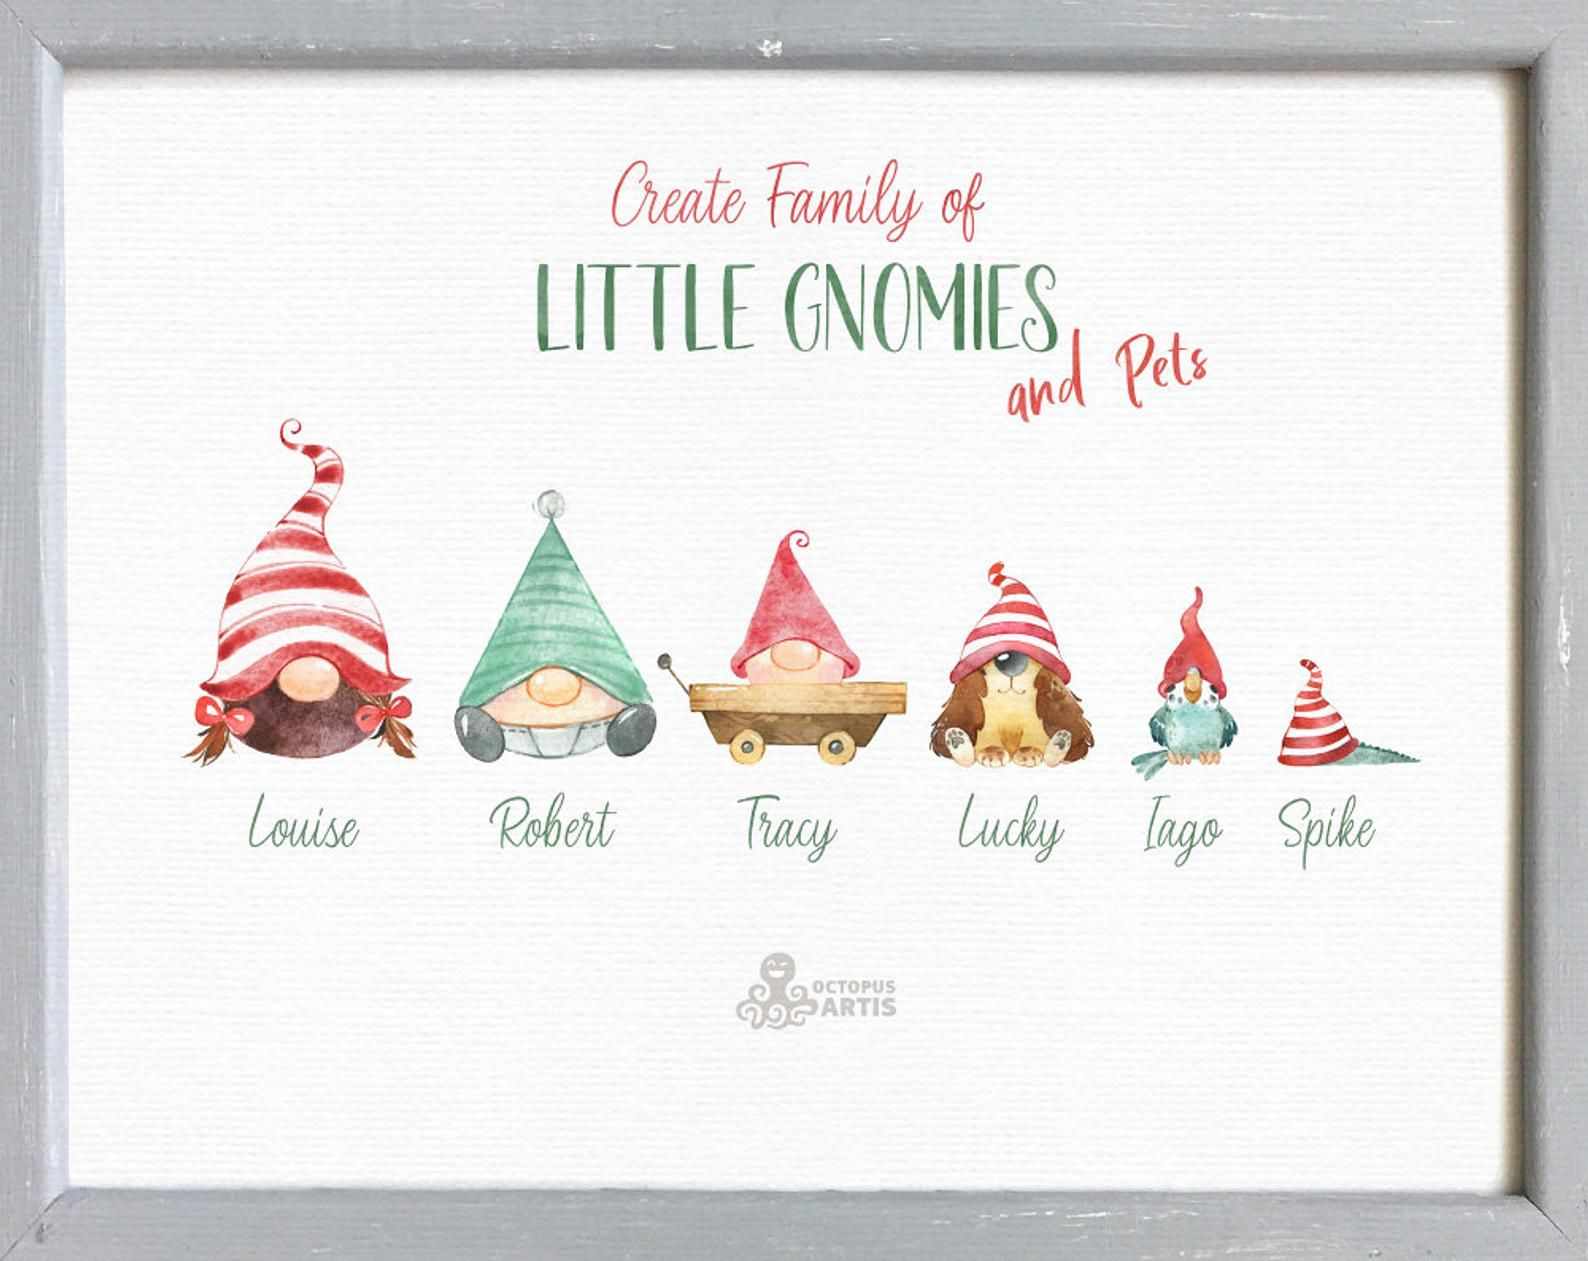 Gnomes Kids Pets Watercolor Holiday Clipart Nordic Baby Animals Child Christmas Winter Cards Nursery Art Critters Cat In 2021 Animals For Kids Holiday Clipart Small Business Gift Ideas